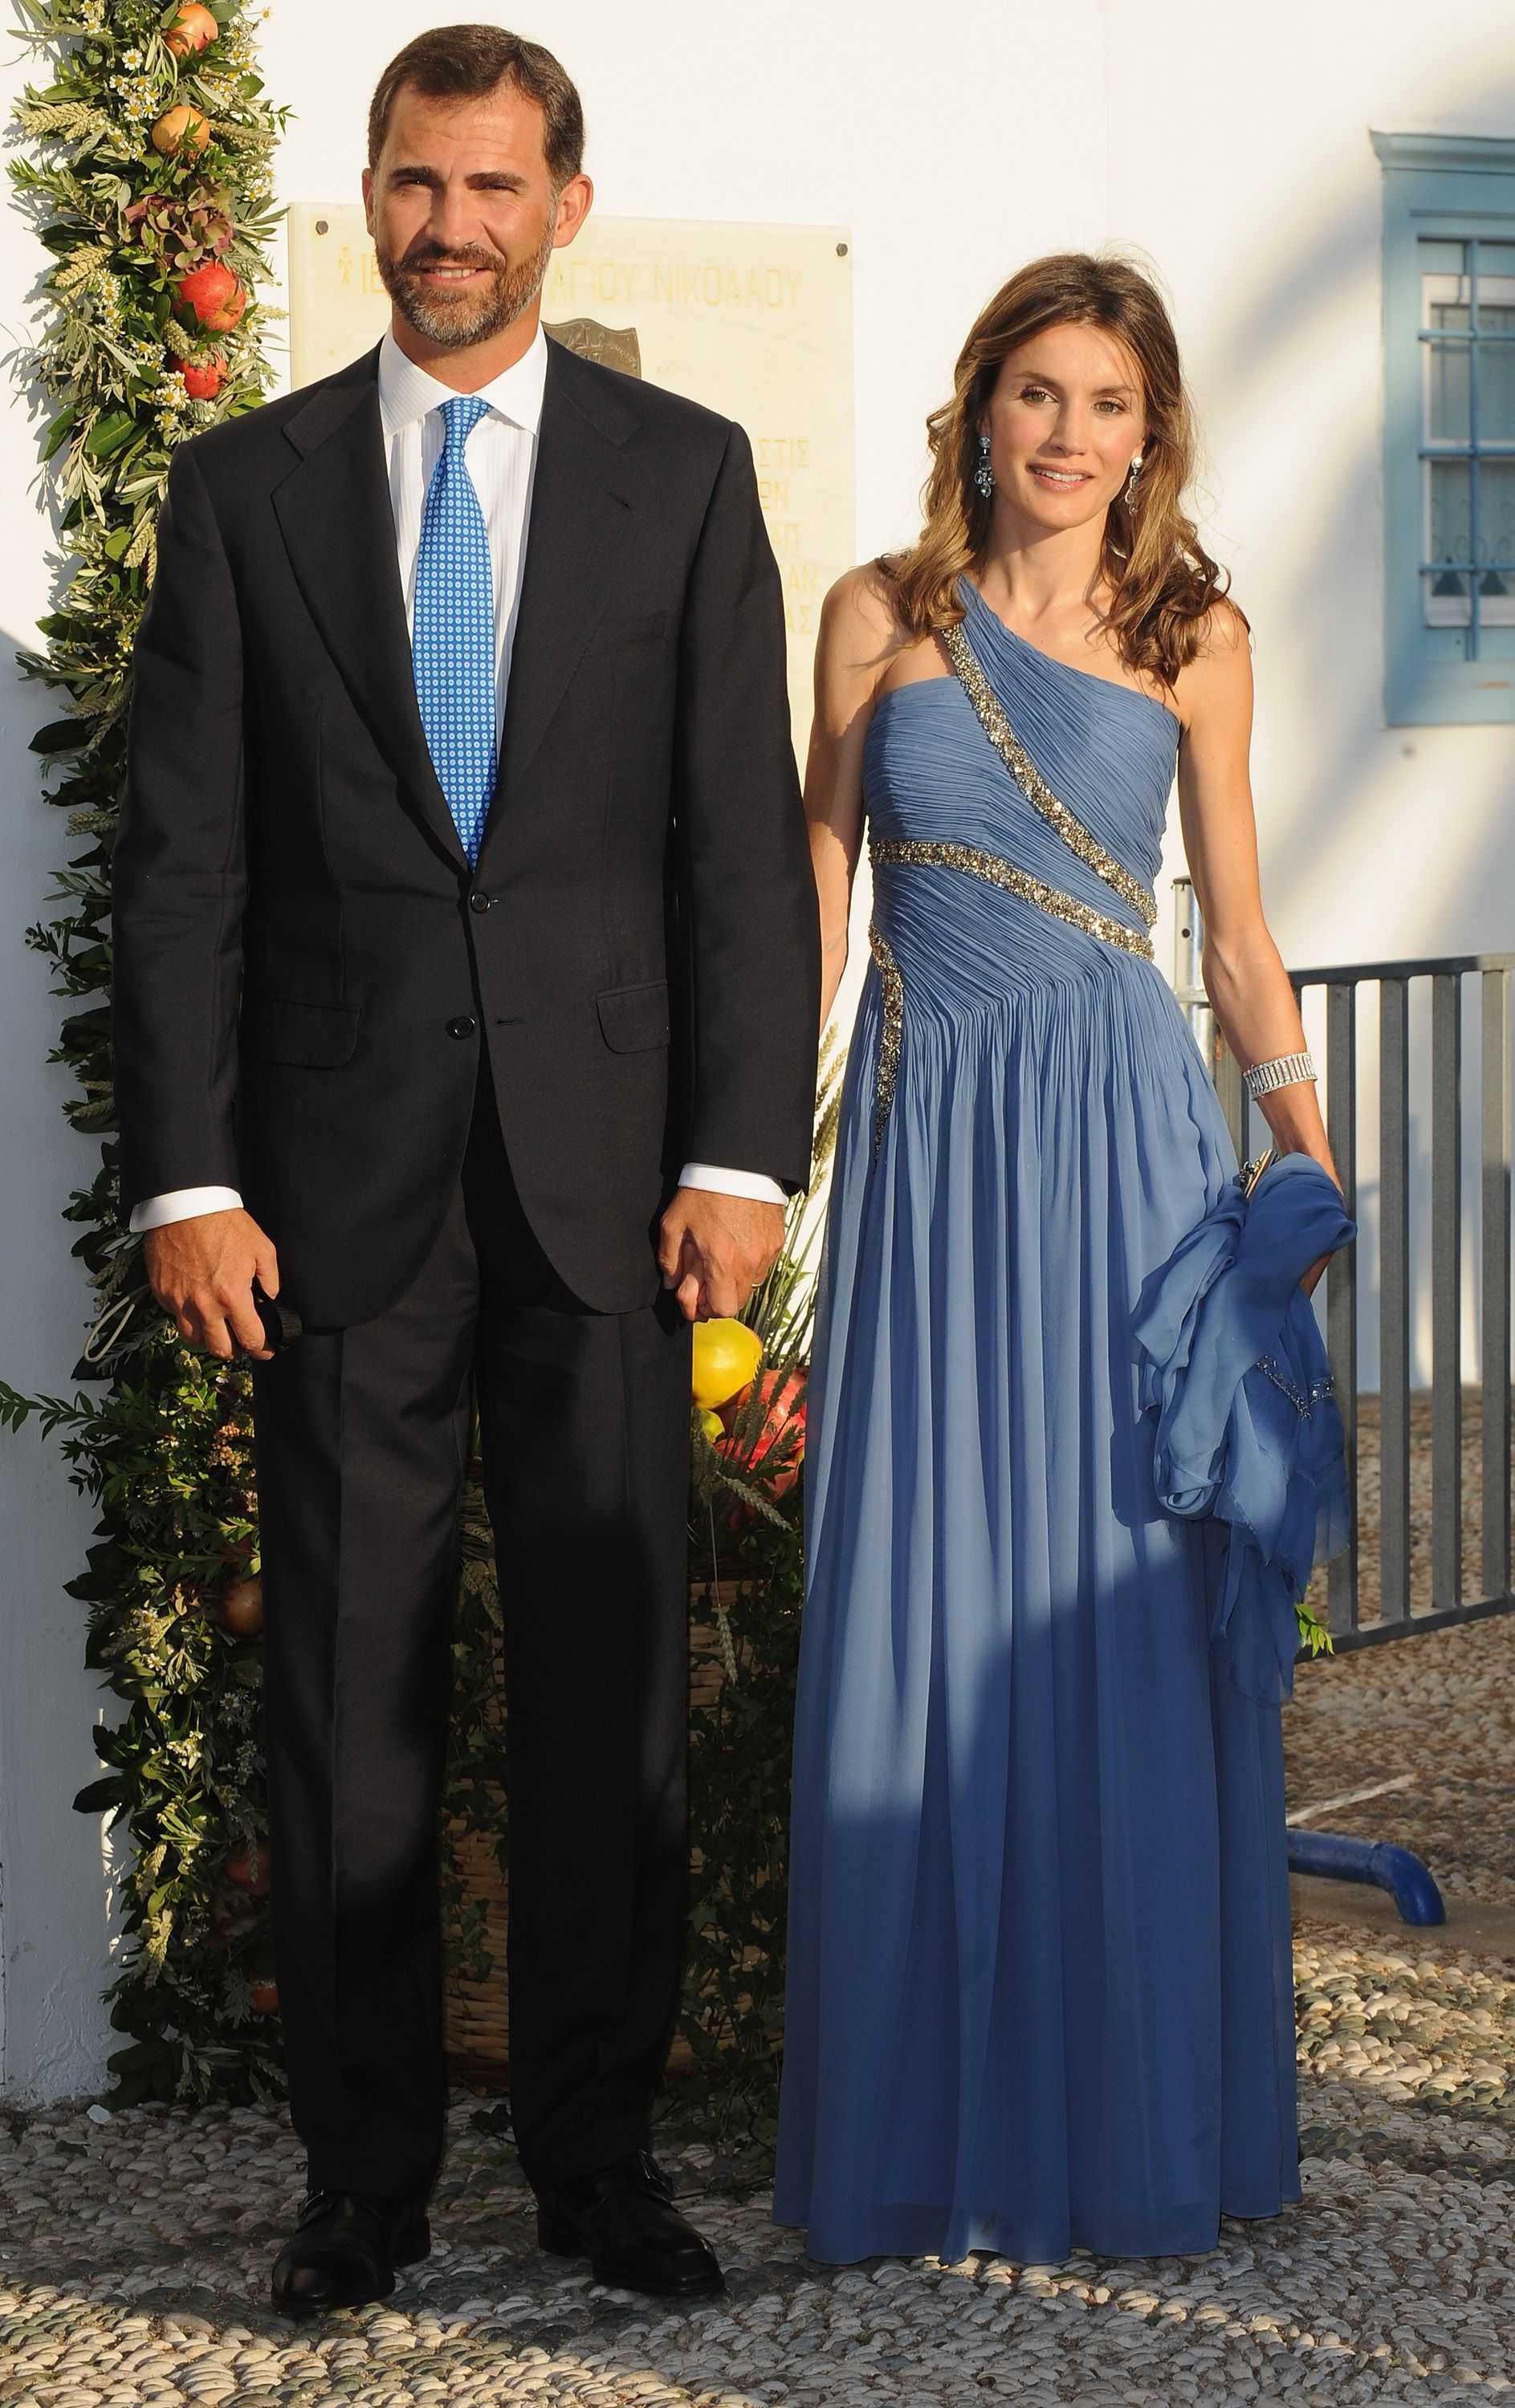 Awesome Commoners Gown Crest - Ball Gown Wedding Dresses - wietpas.info